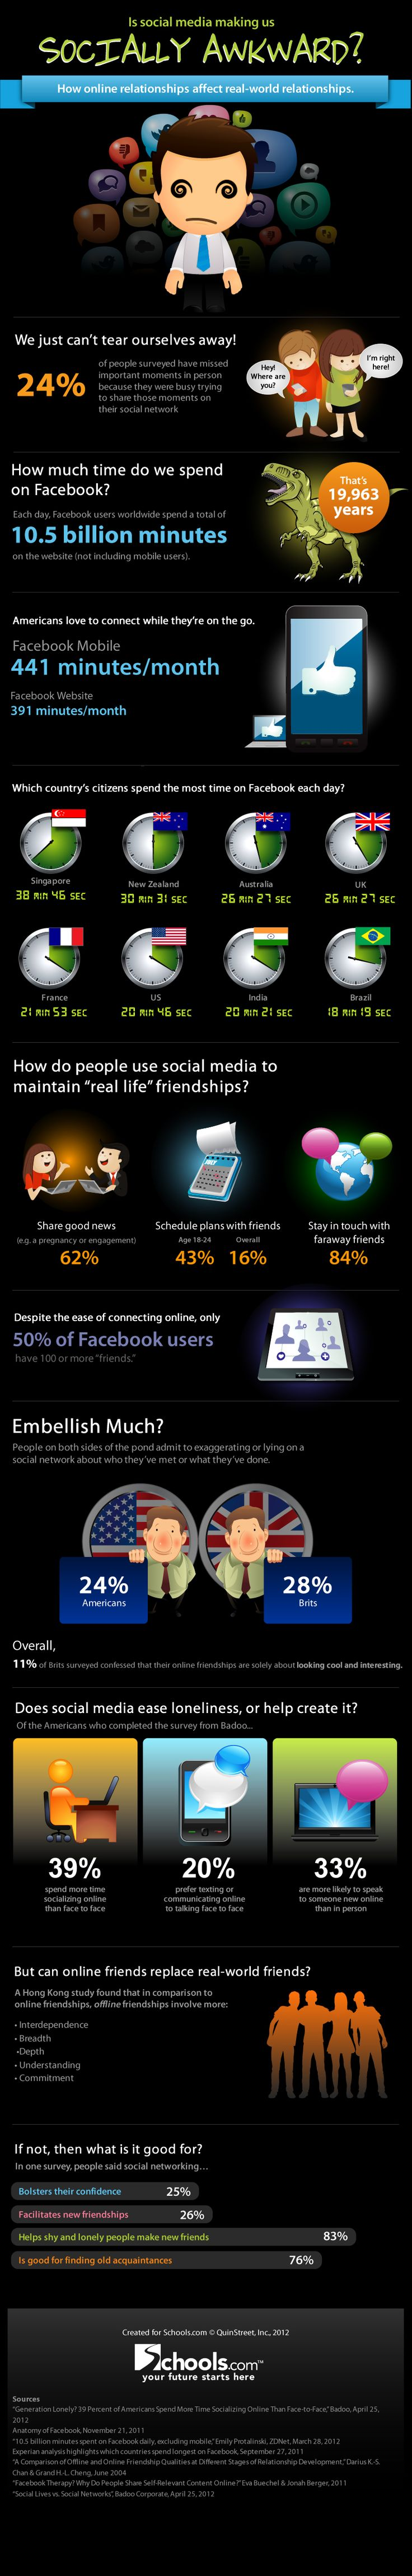 Social Media and Real Relationships [INFOGRAPHIC]